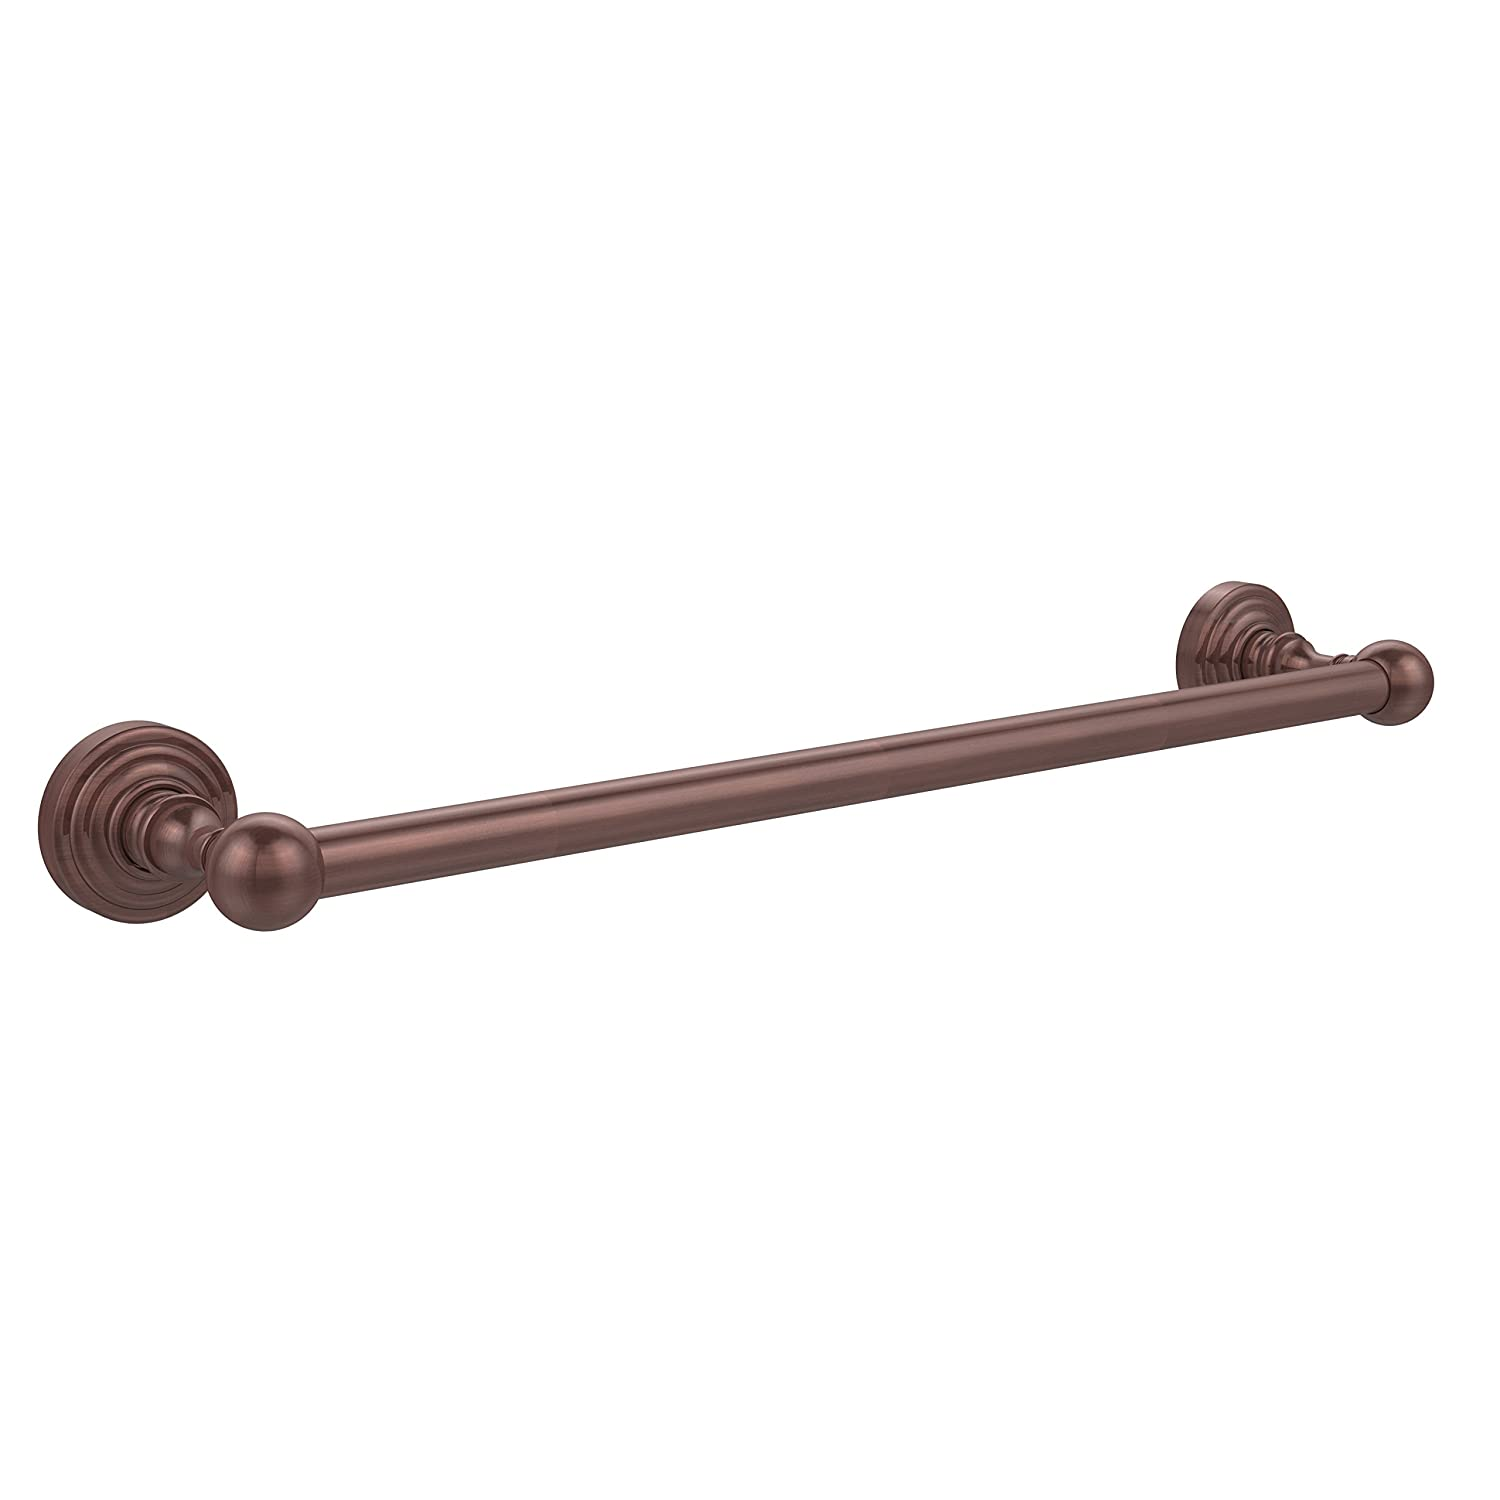 Allied Brass WP-41//24-CA Waverly Place Collection 24 Inch Towel Bar Antique Copper